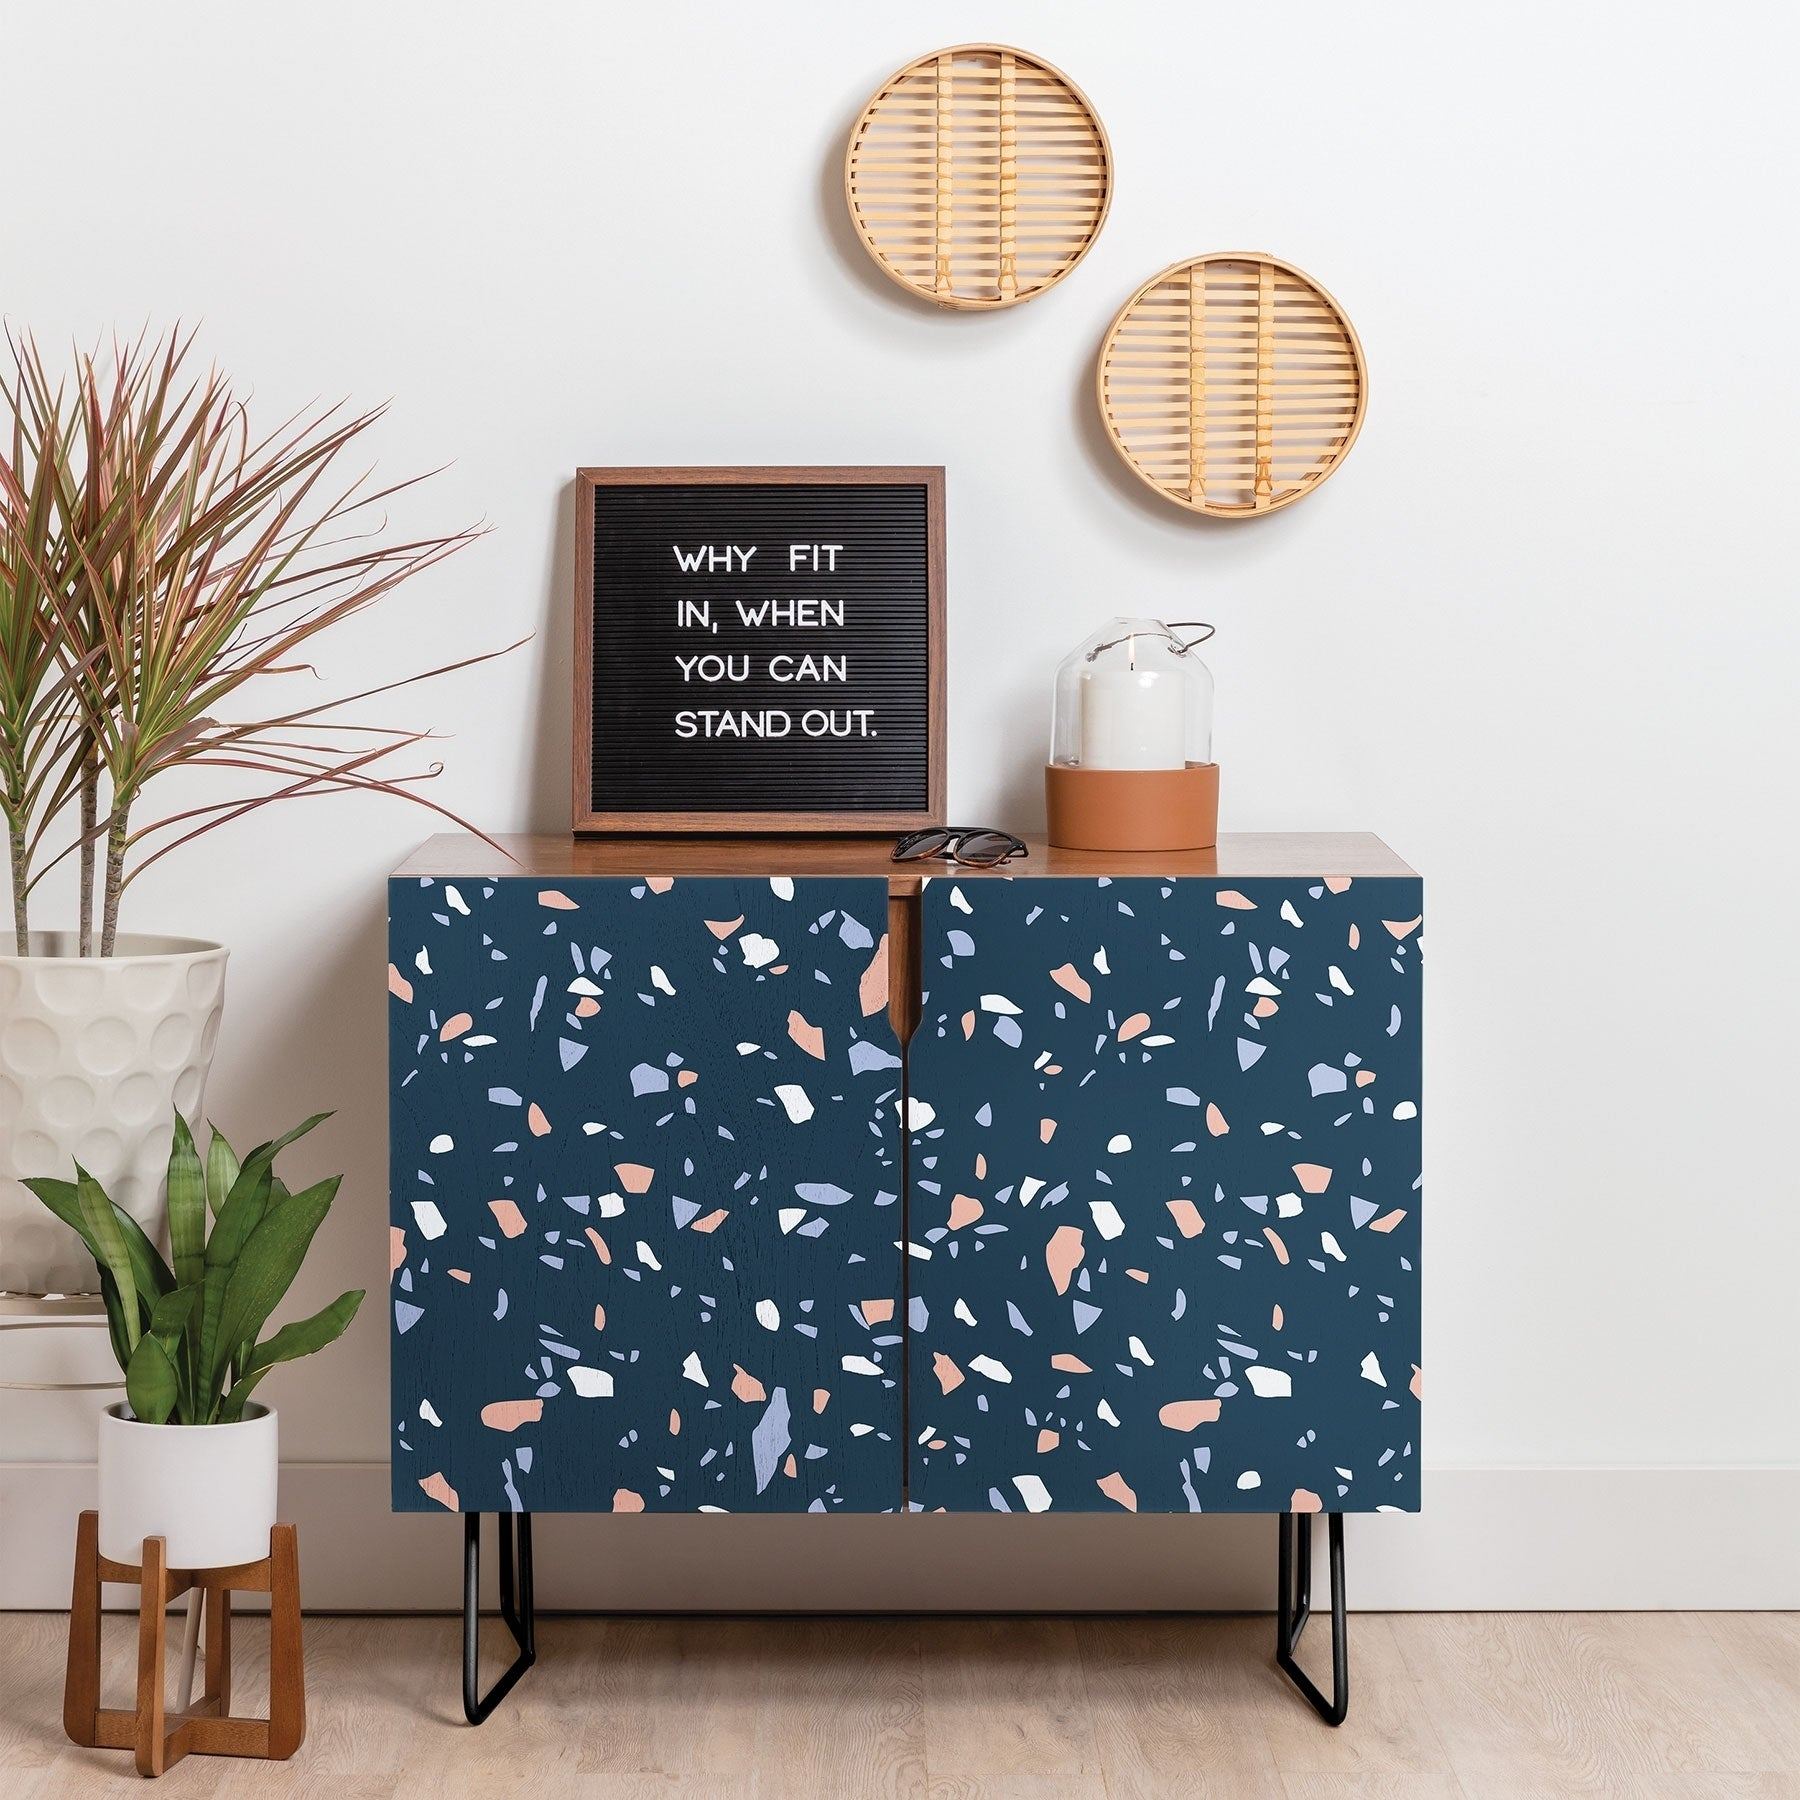 Deny Designs So Blue Terrazzo Credenza (Birch Or Walnut, 2 Leg Options) Intended For Blue Stained Glass Credenzas (Gallery 18 of 30)